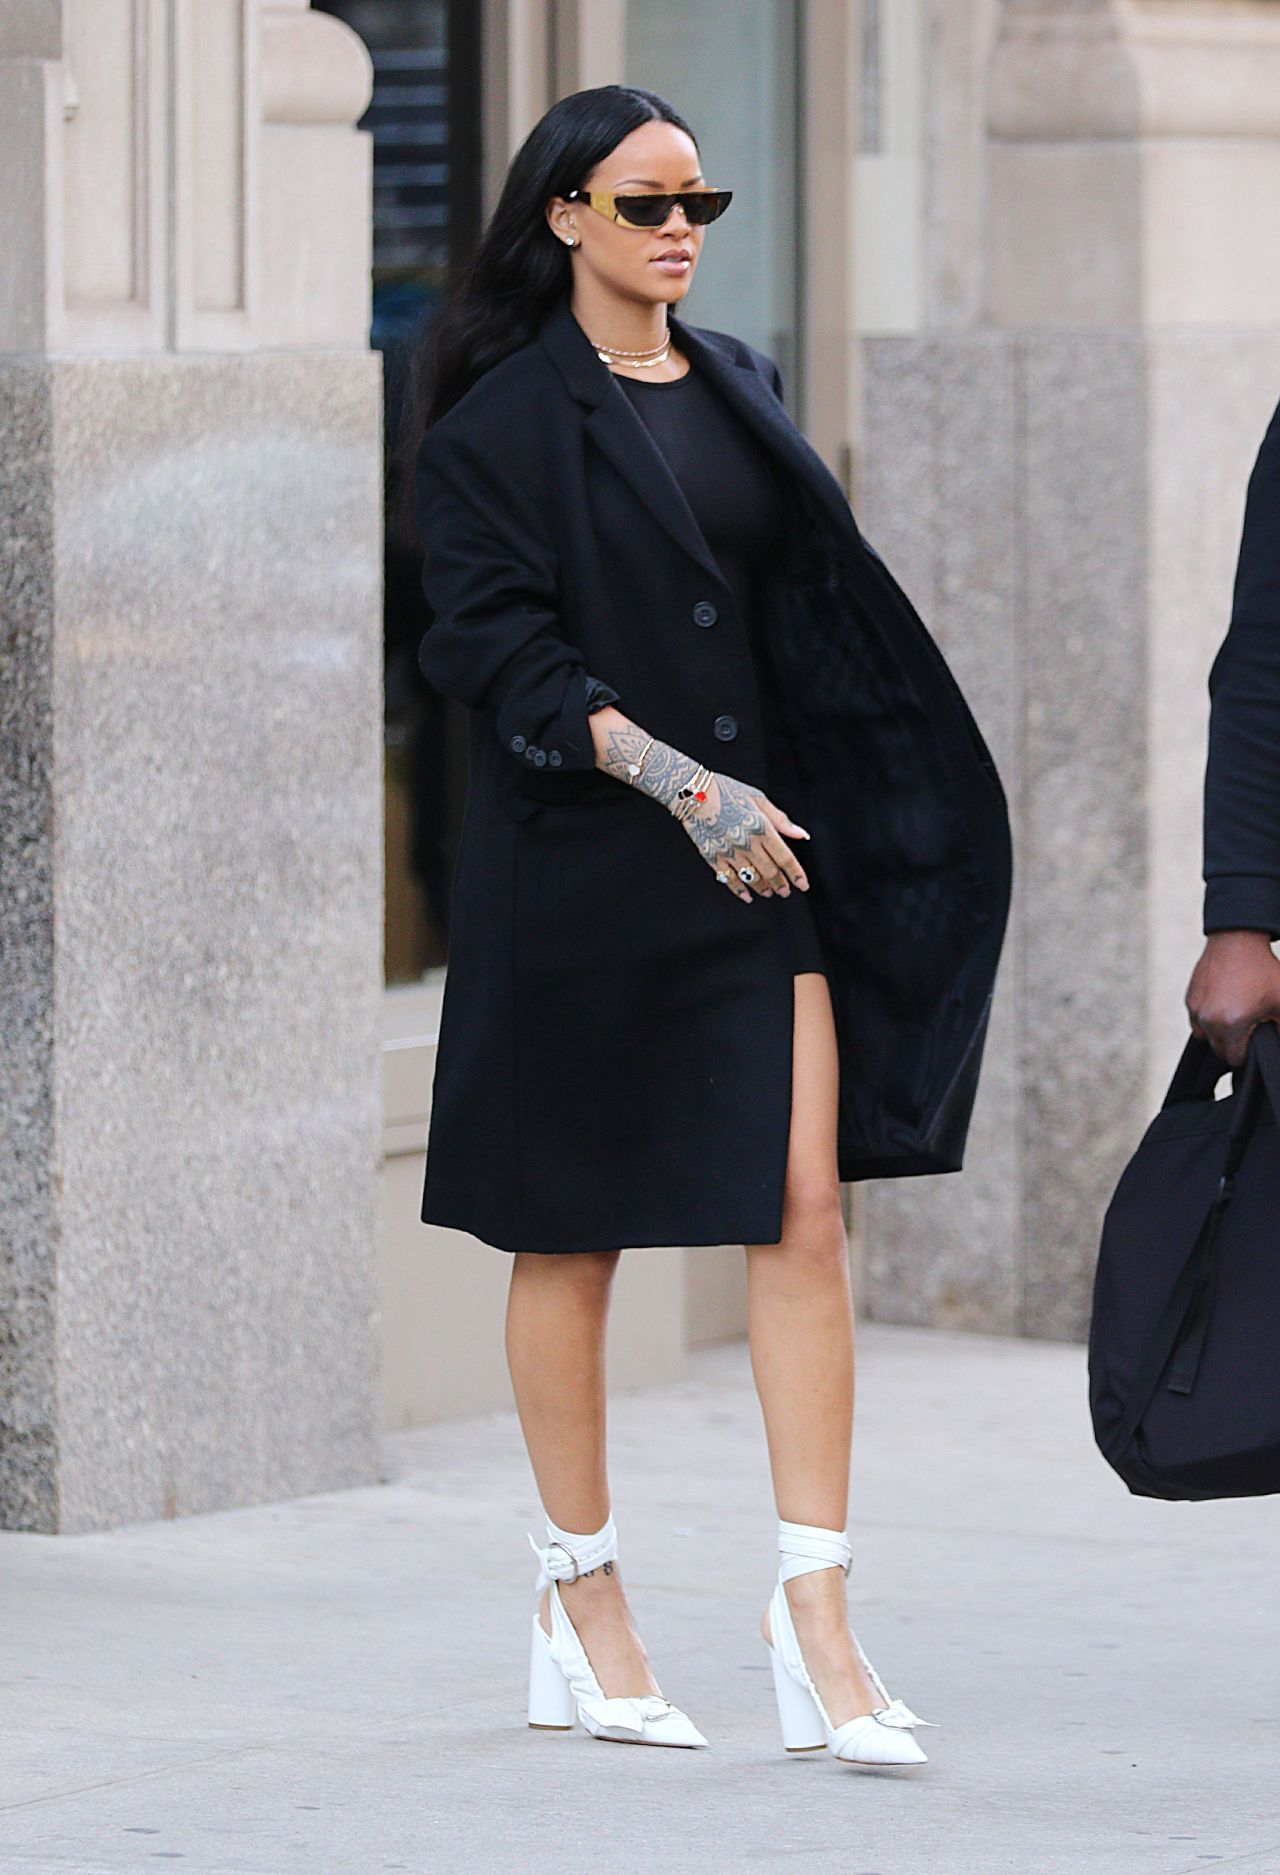 Rihanna Street Fashion New York City 3 30 2016